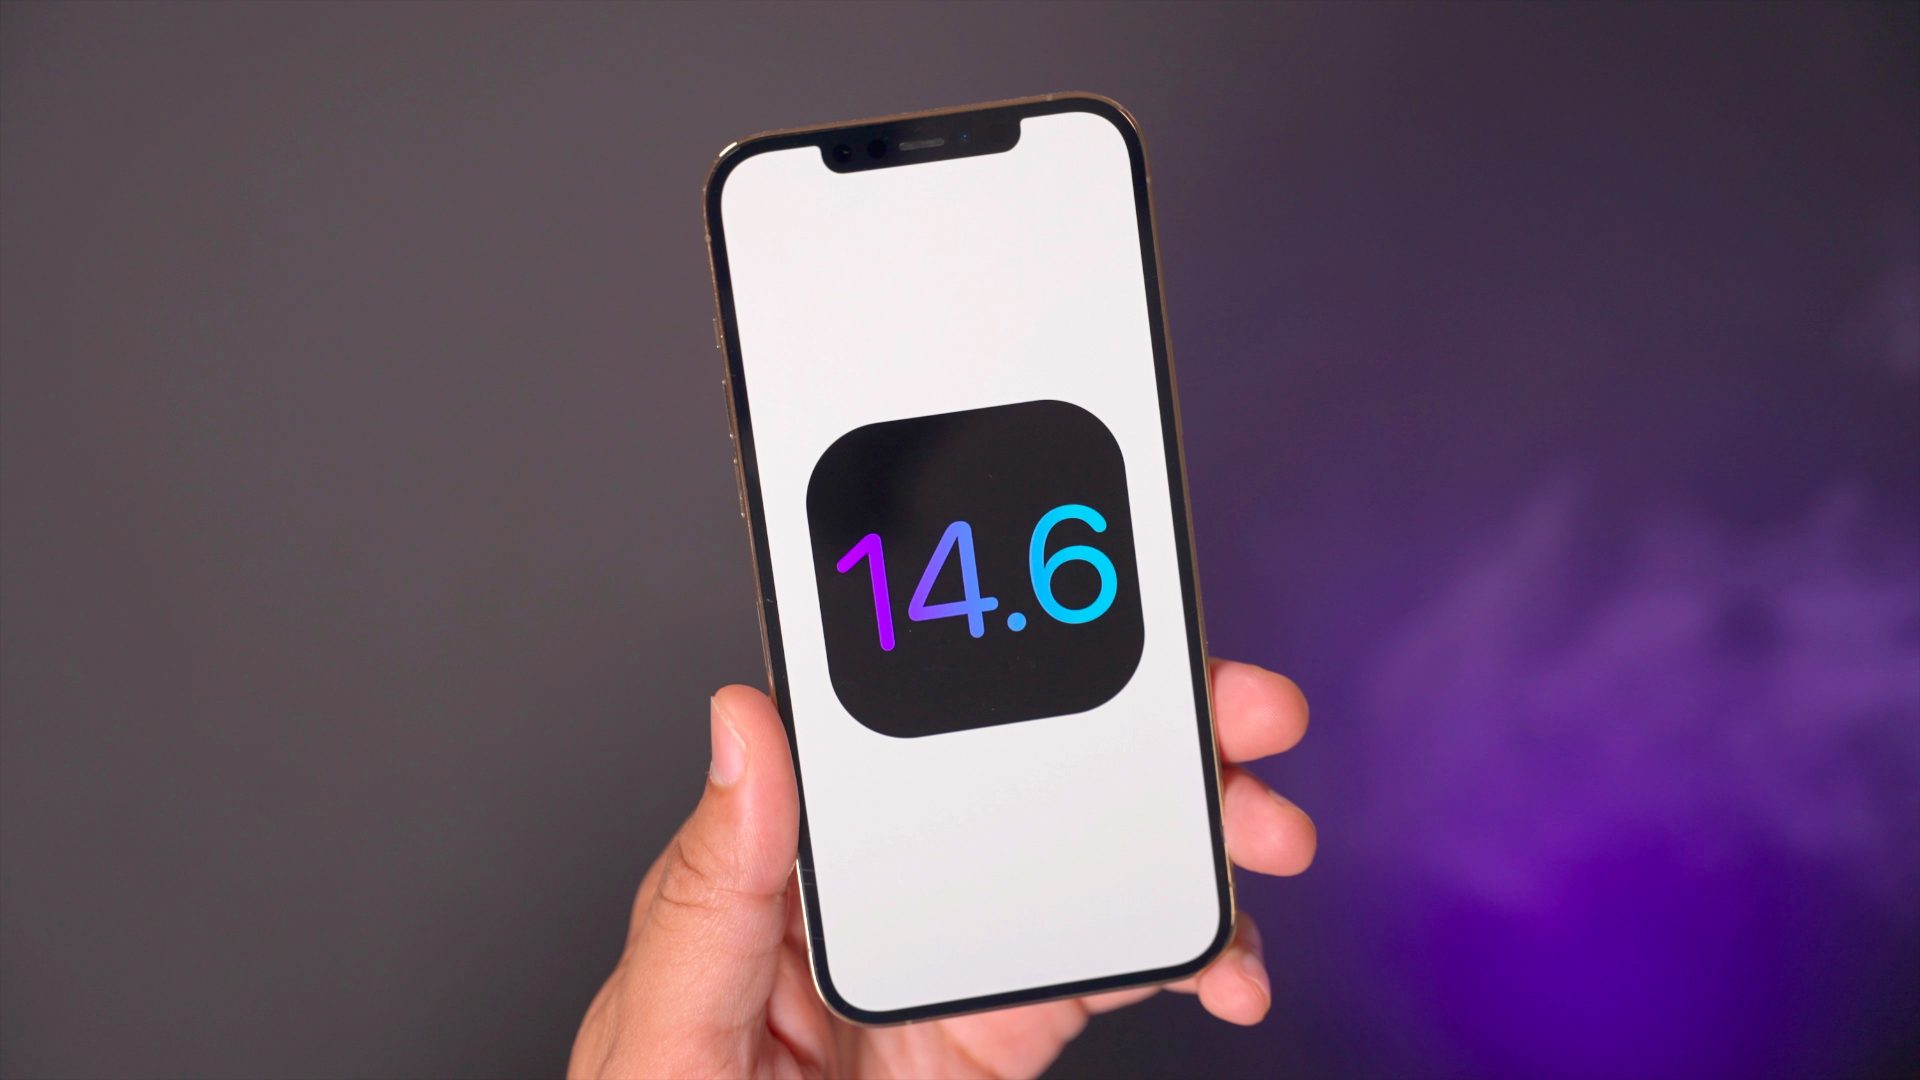 iOS-14.6-changes-and-features